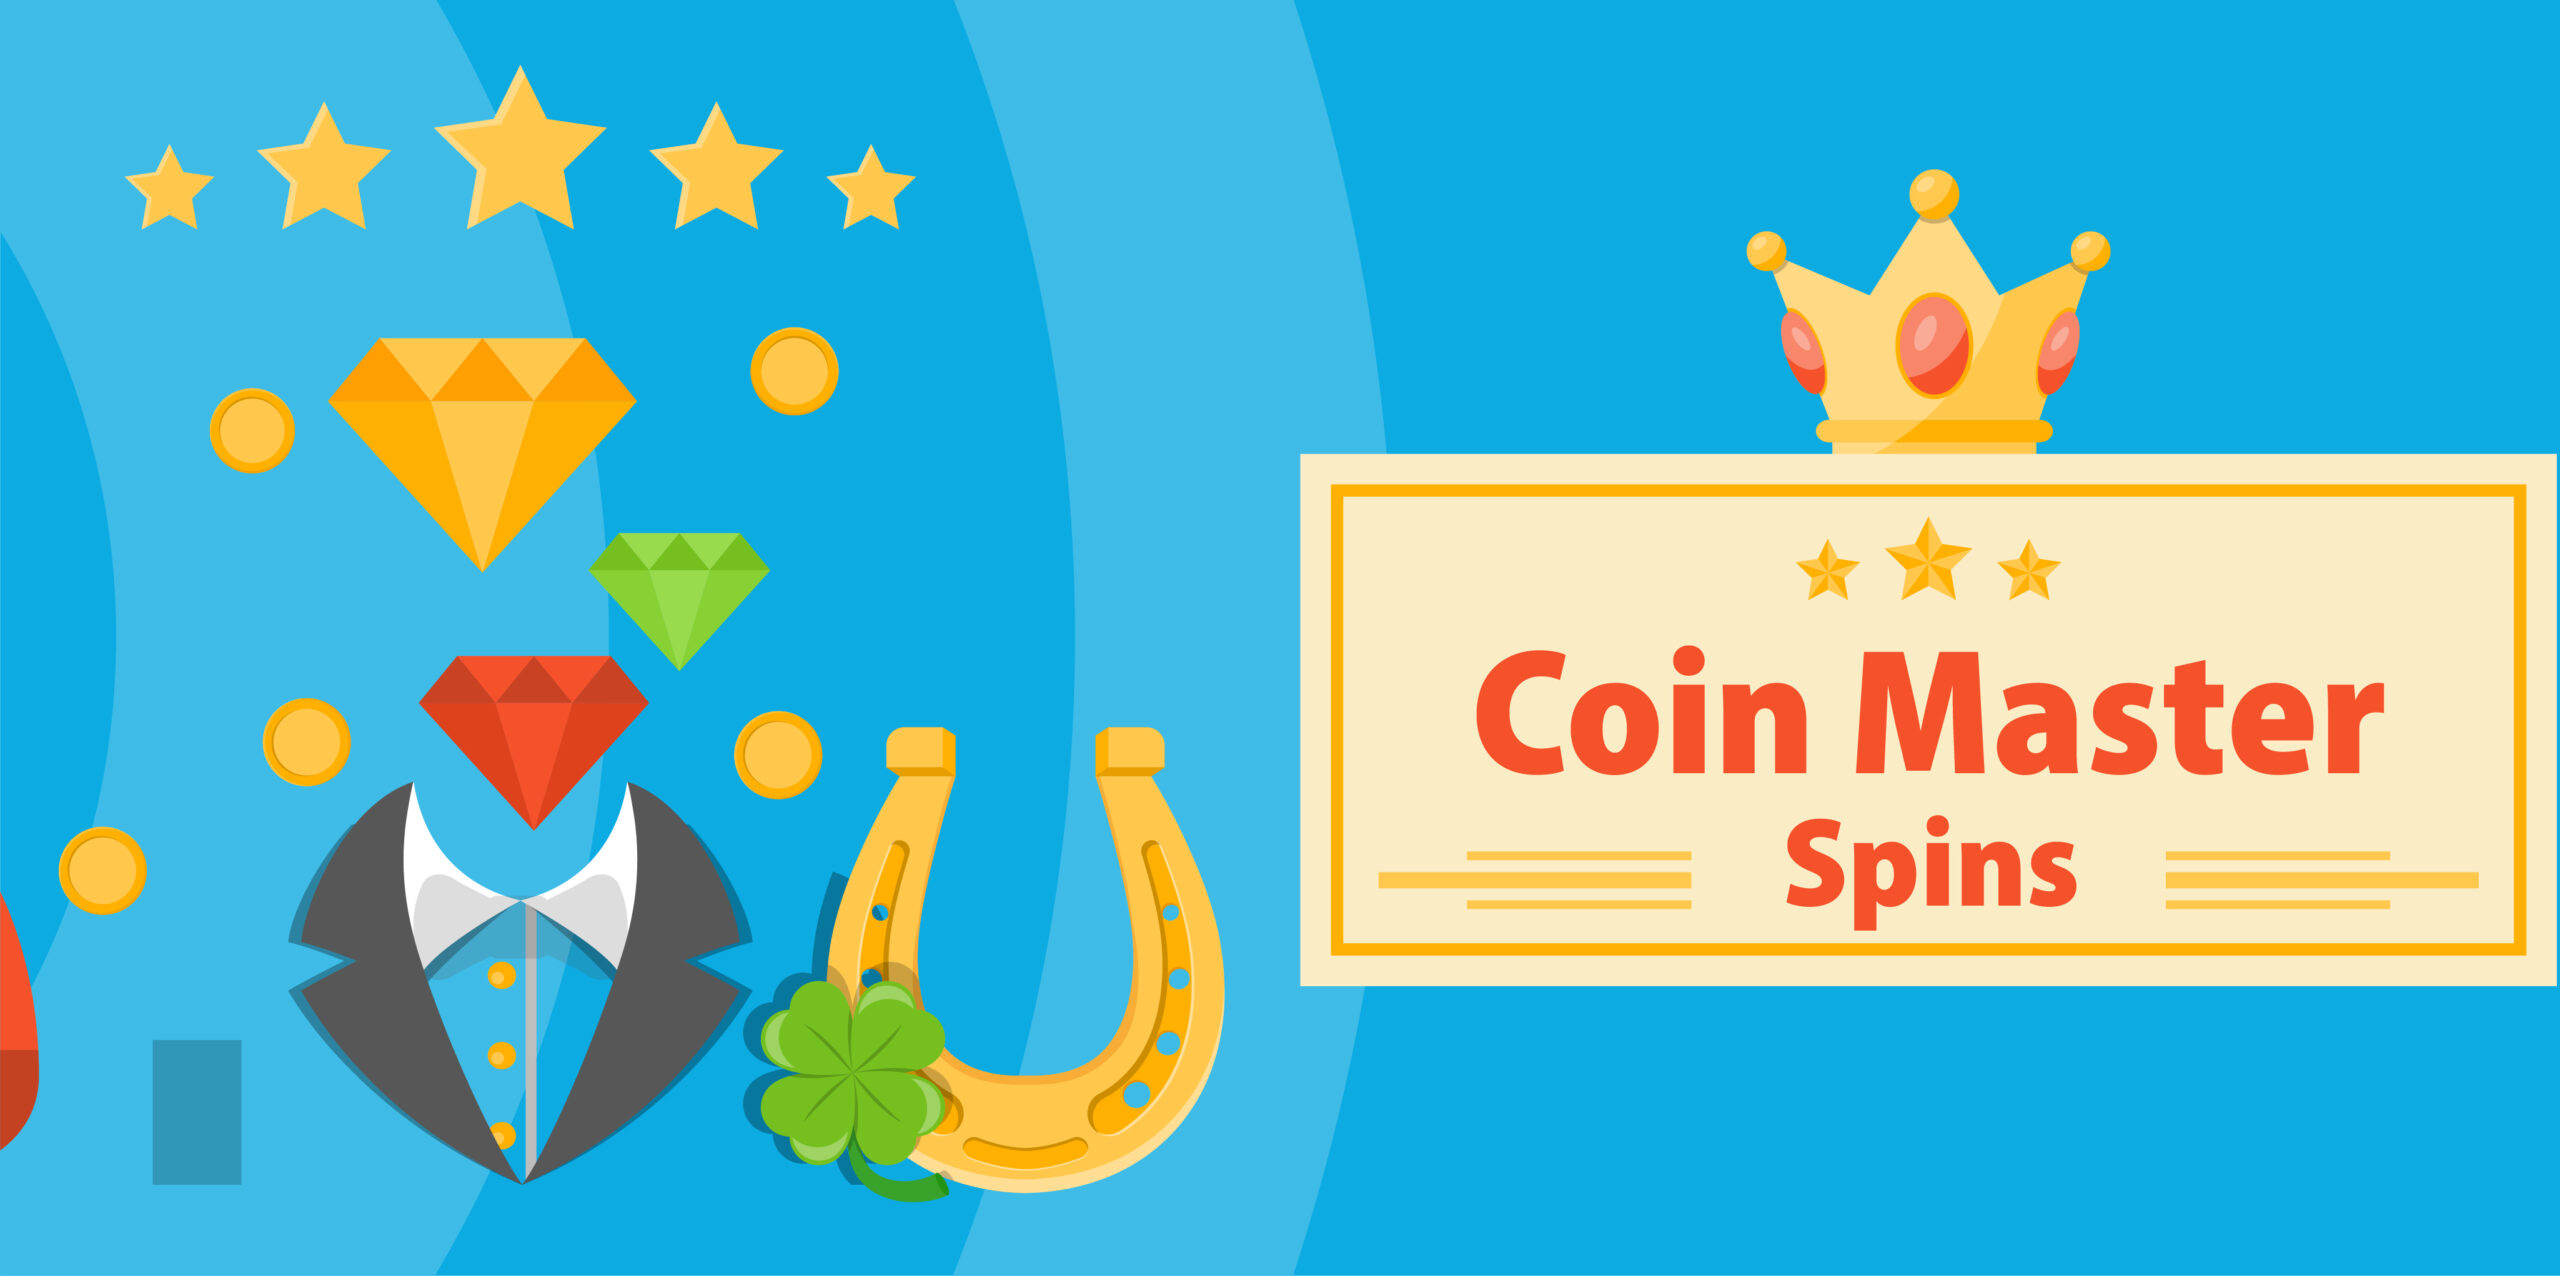 Coin Master free Daily spins